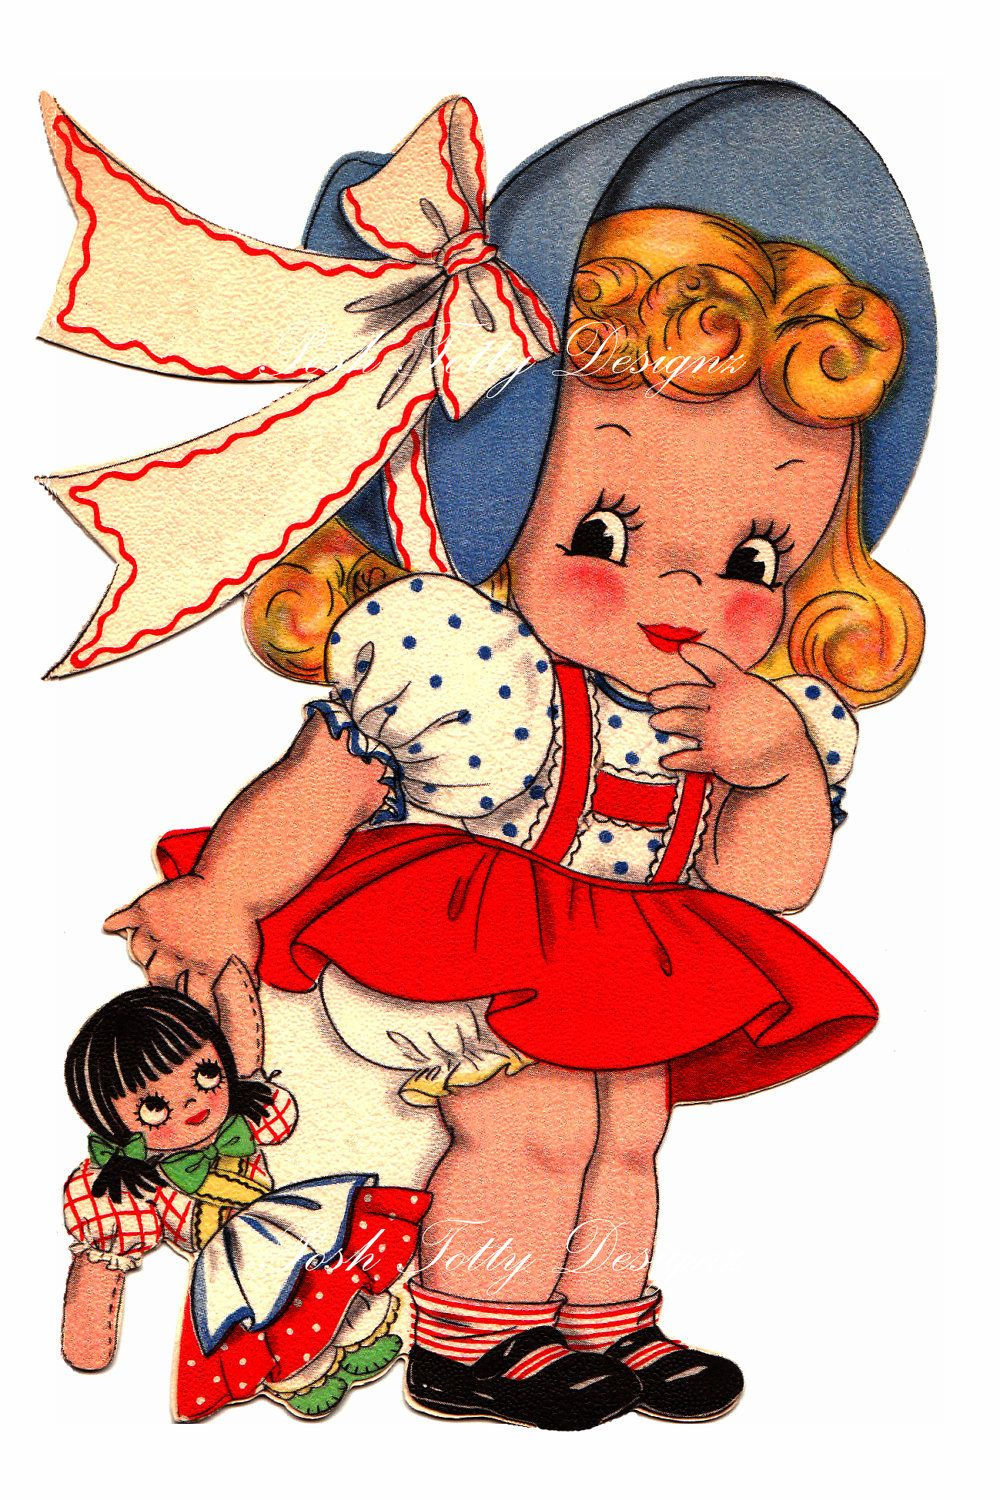 Little Girl And Her Dolly 1930s Greetings Card Vintage Digital